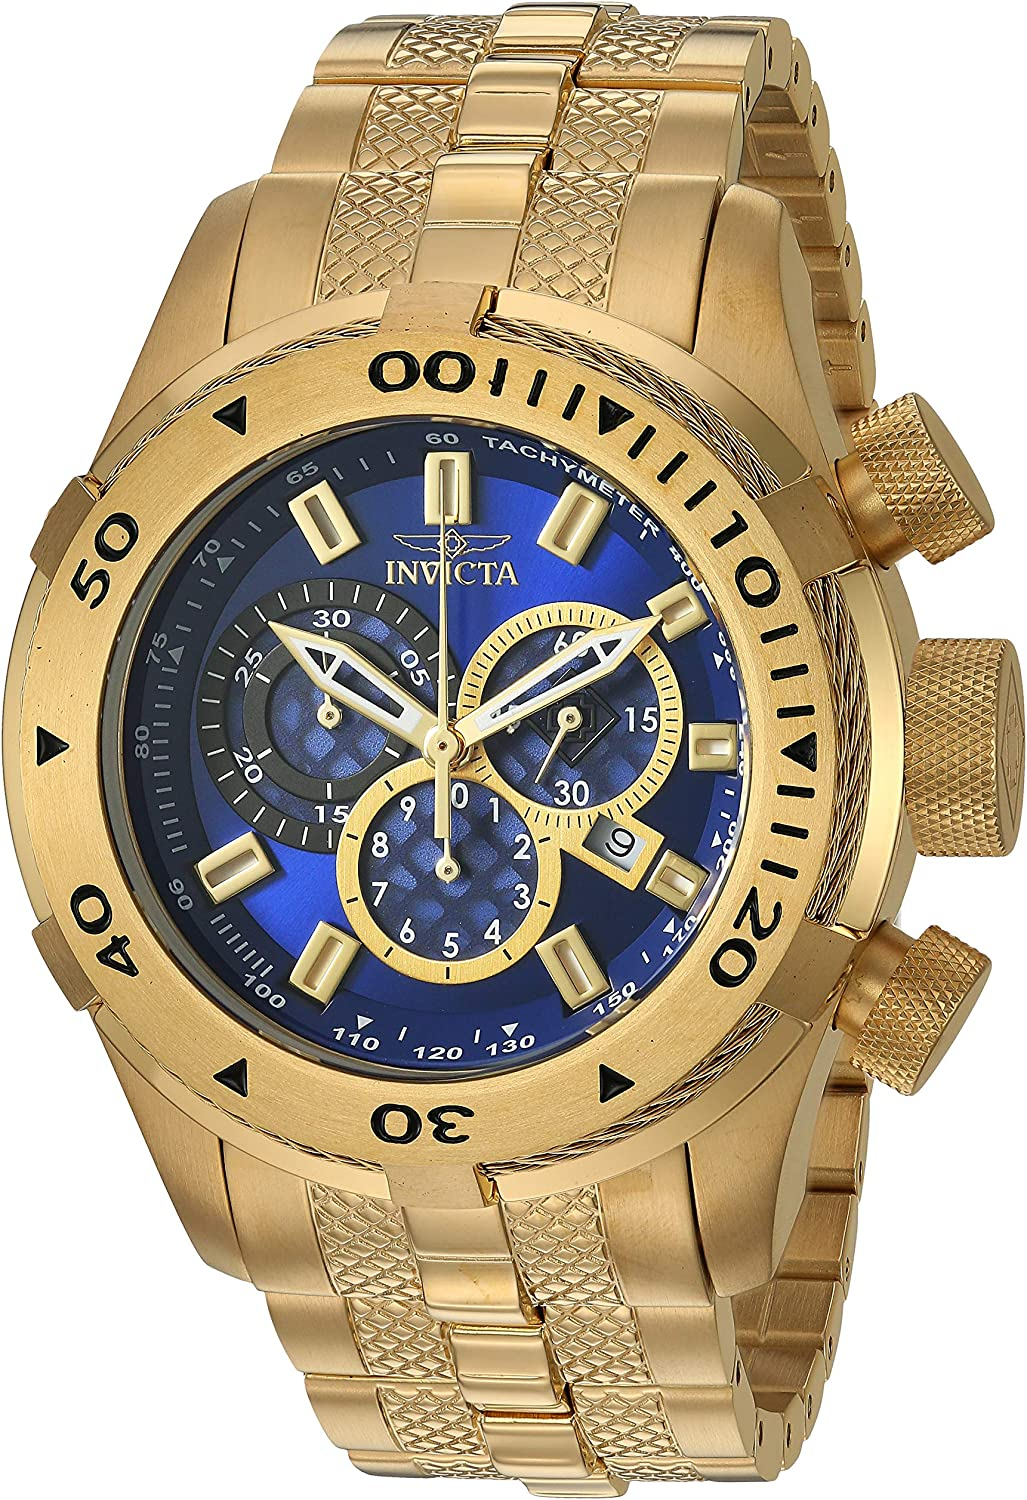 Invicta Men's OFFicial Bolt Quartz Watch with Steel Strap Gold Now on sale Stainless